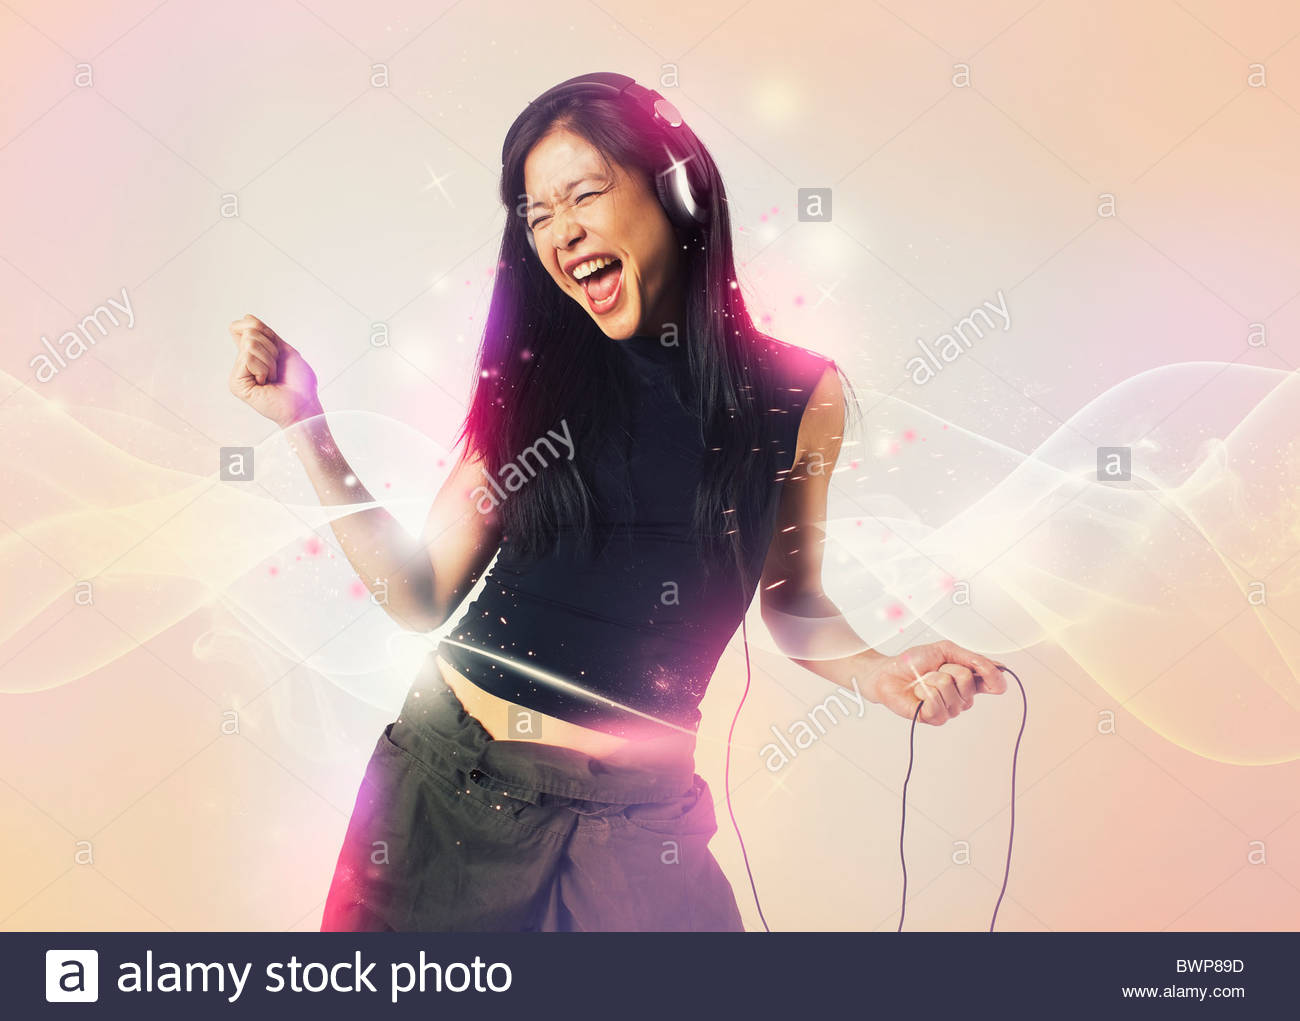 Happy woman singing and dancing - Stock Image